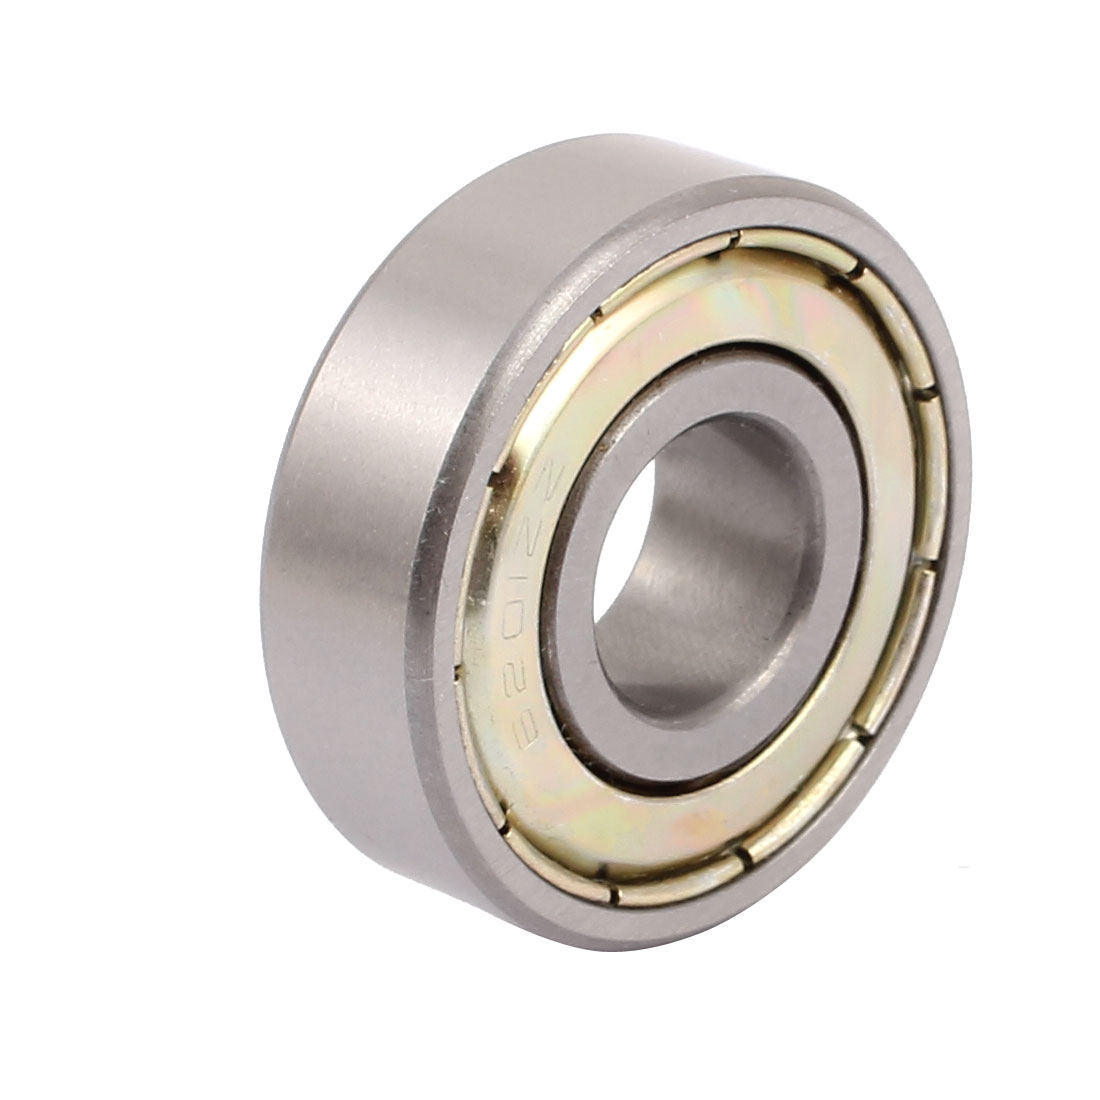 Metal Deep Groove Sealed Shielded Ball Bearing 12mmx32mmx10mm Silver Tone - image 2 of 2